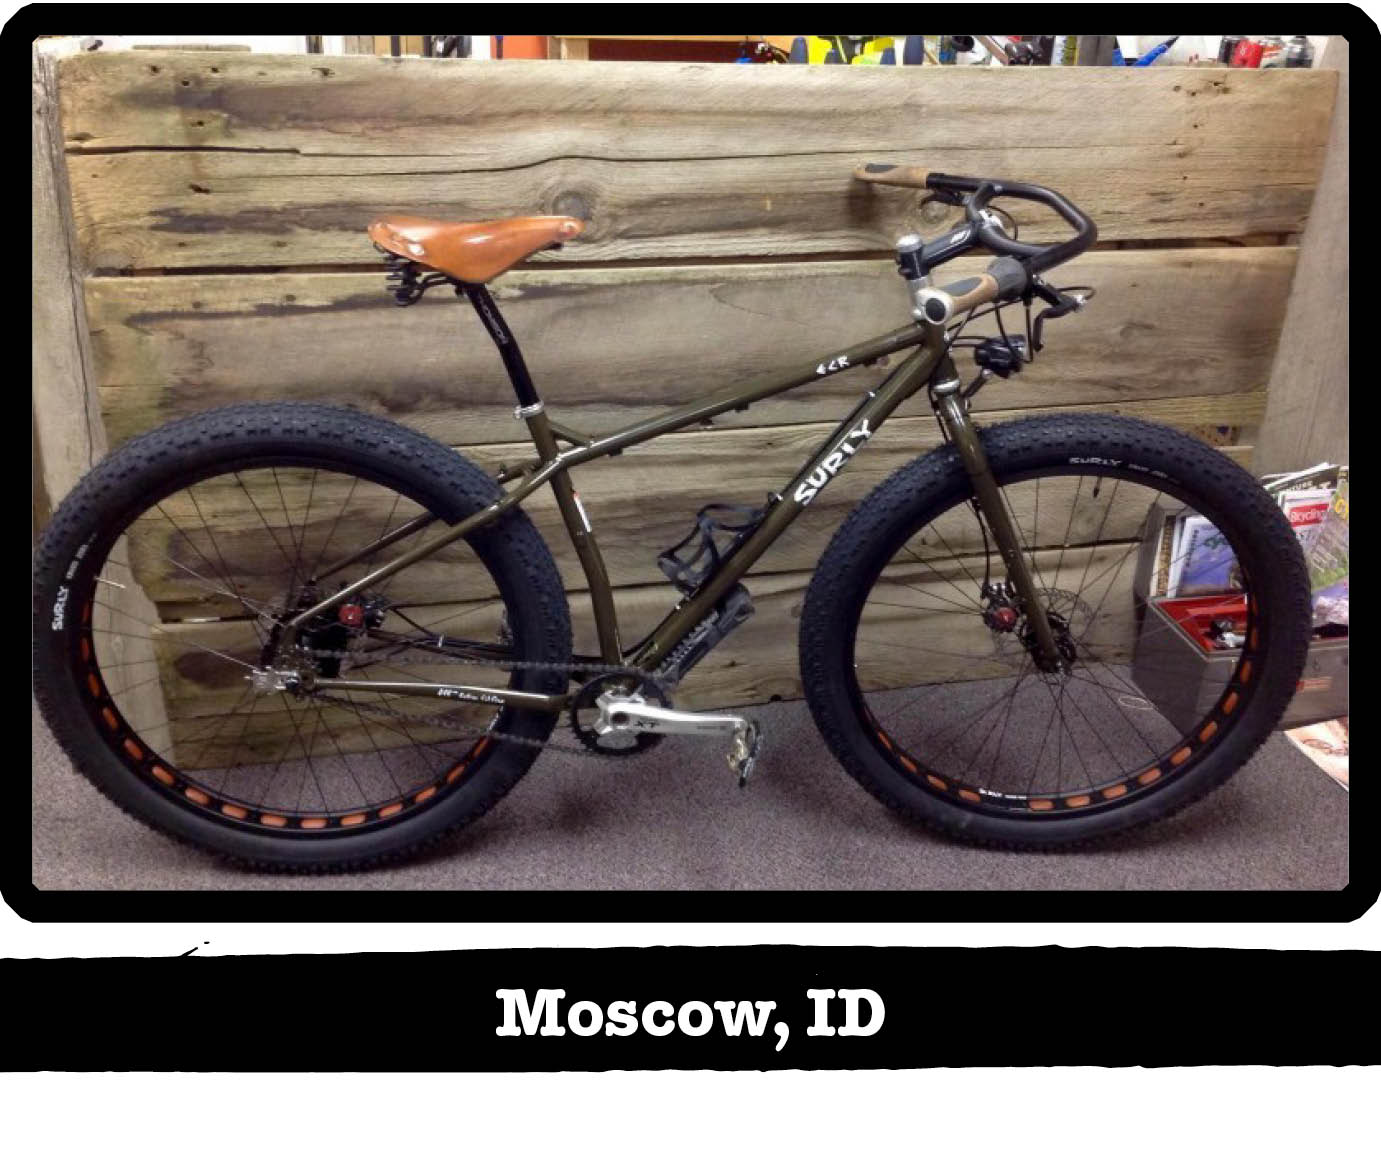 Right side view of a Surly ECR fat bike, olive drab, against a wood wall - Moscow, ID tag below image